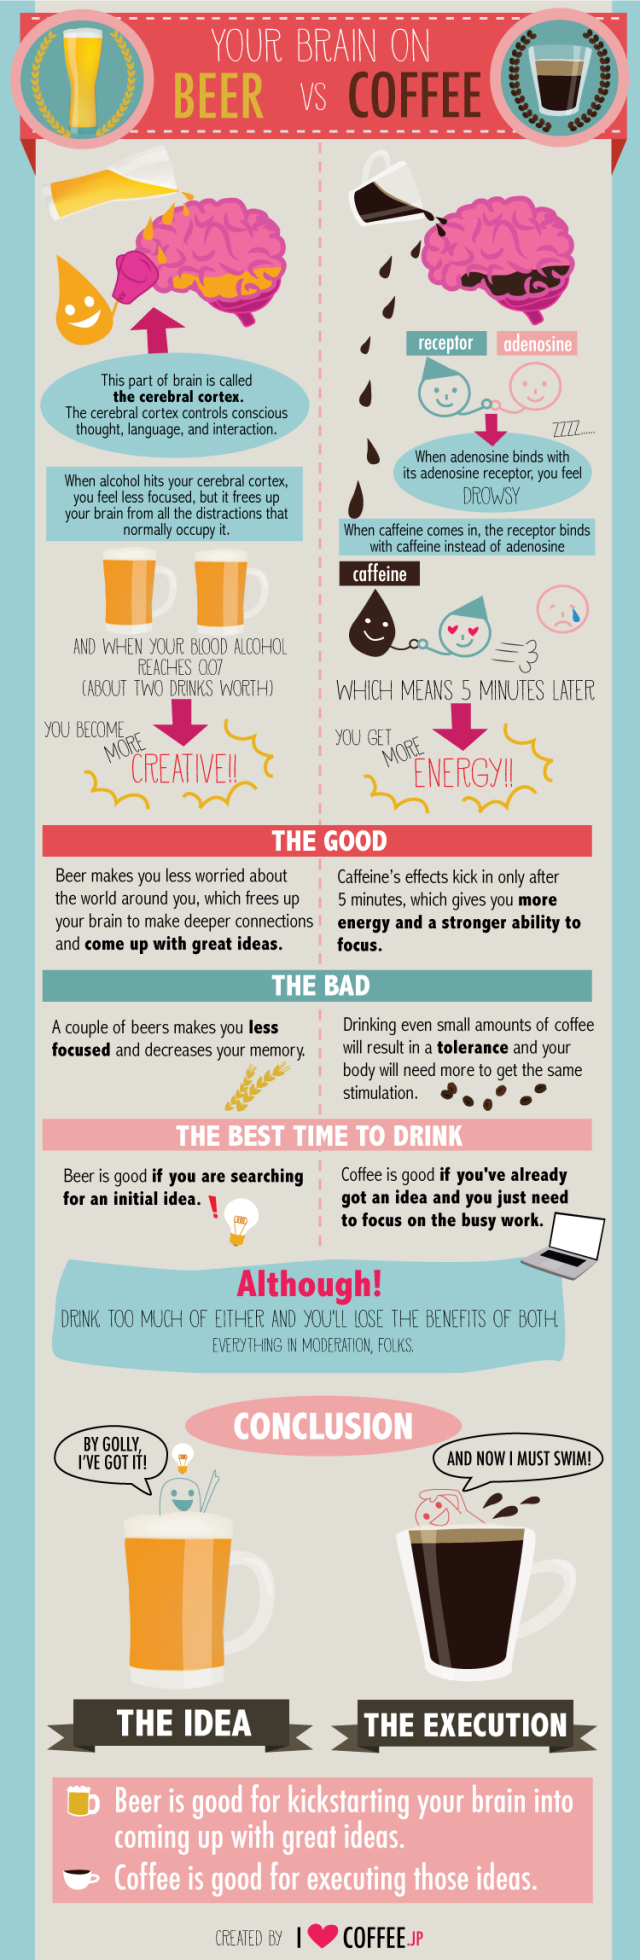 how-beer-and-coffee-affect-your-brain-640x1960